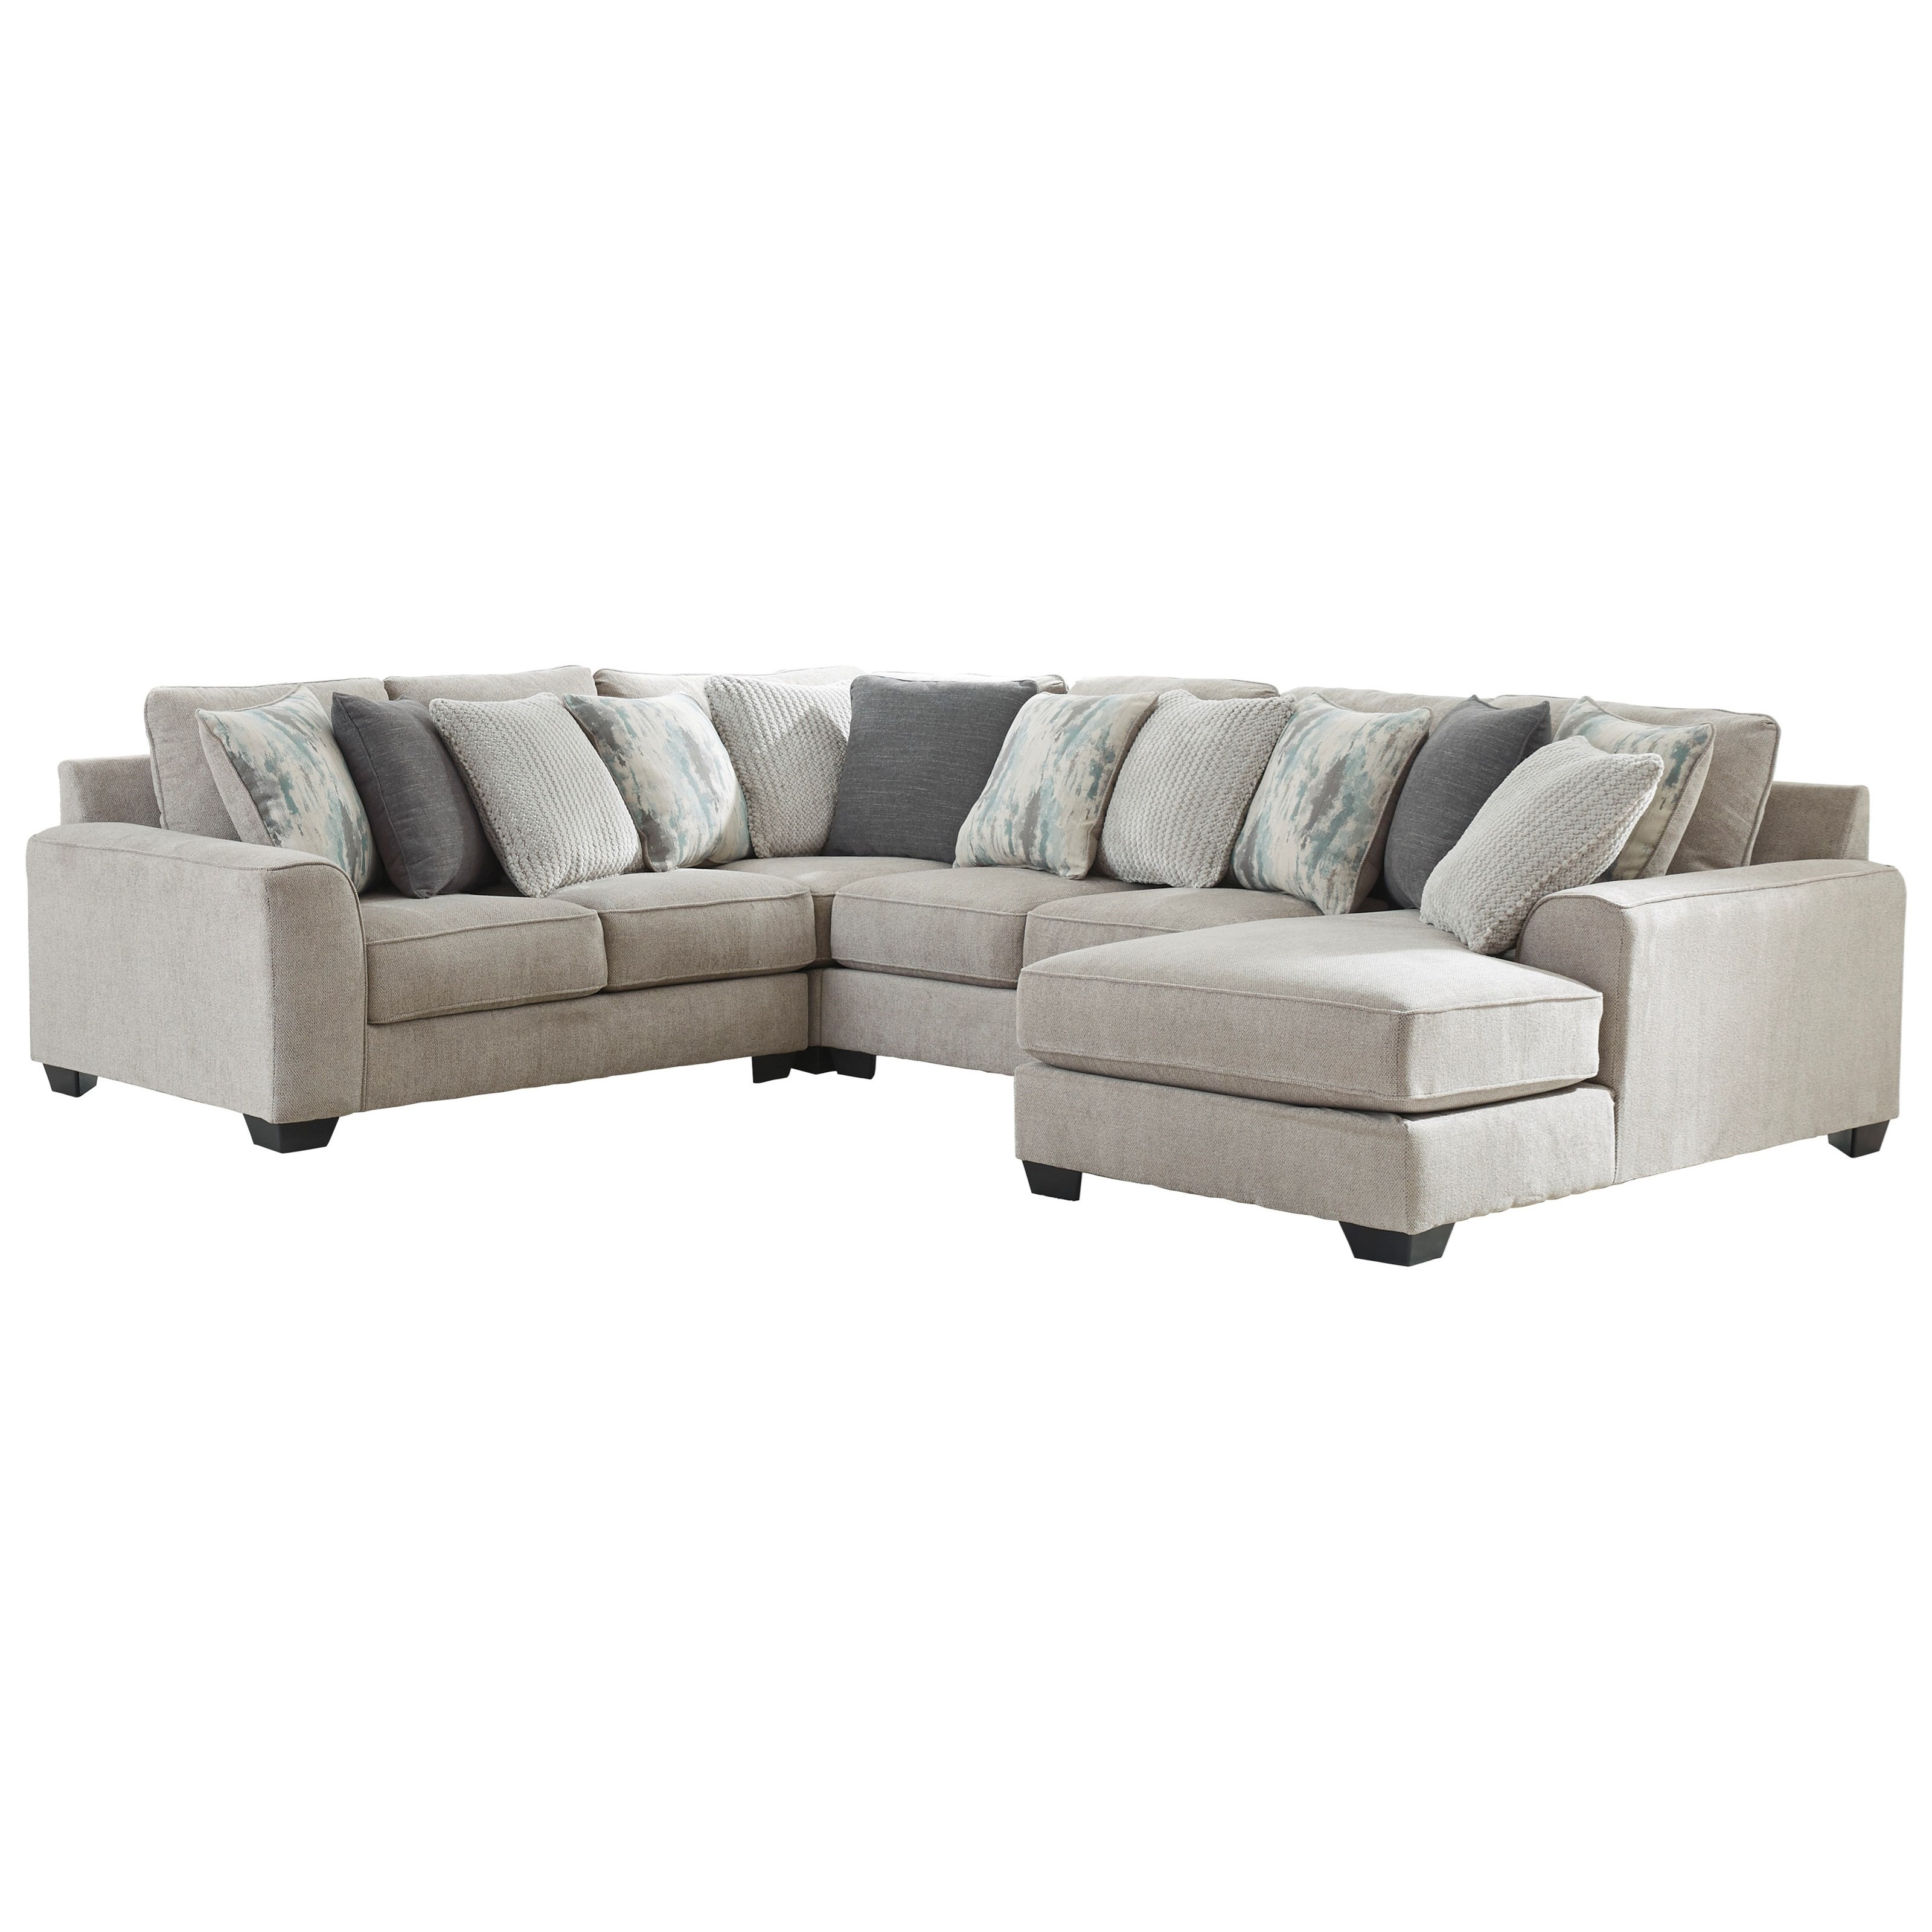 Ardsley 4-Piece Sectional with Right Chaise by Benchcraft at Walker's Furniture